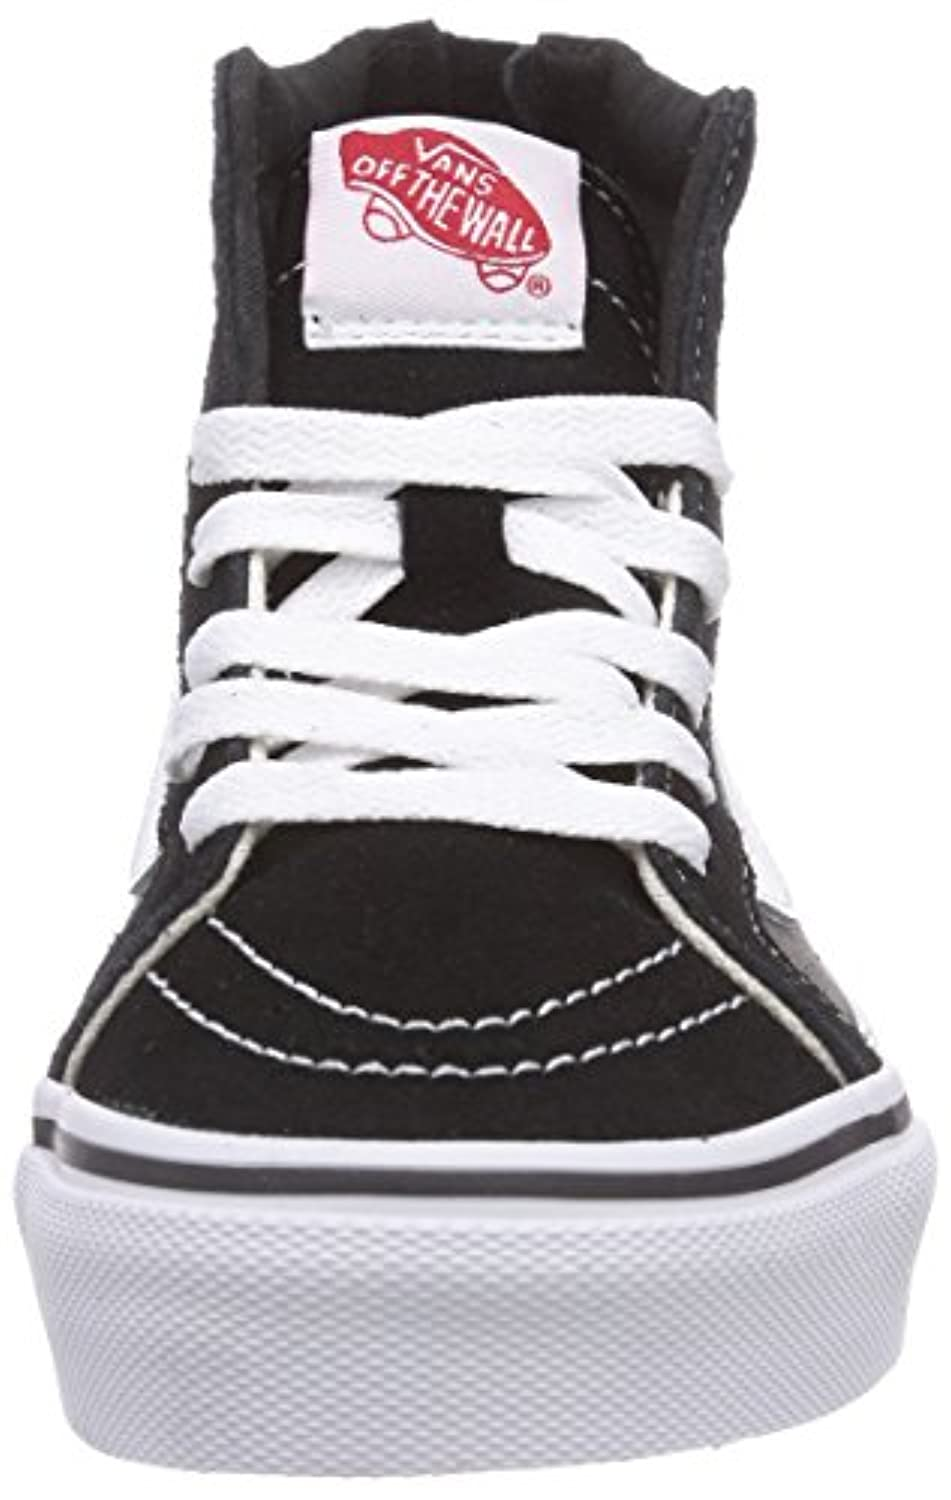 Vans SK8-HI ZIP, Unisex Kids Hi-Top Sneakers, Multicolour (Black/Charcoal BA5), 32 EU, 1 UK